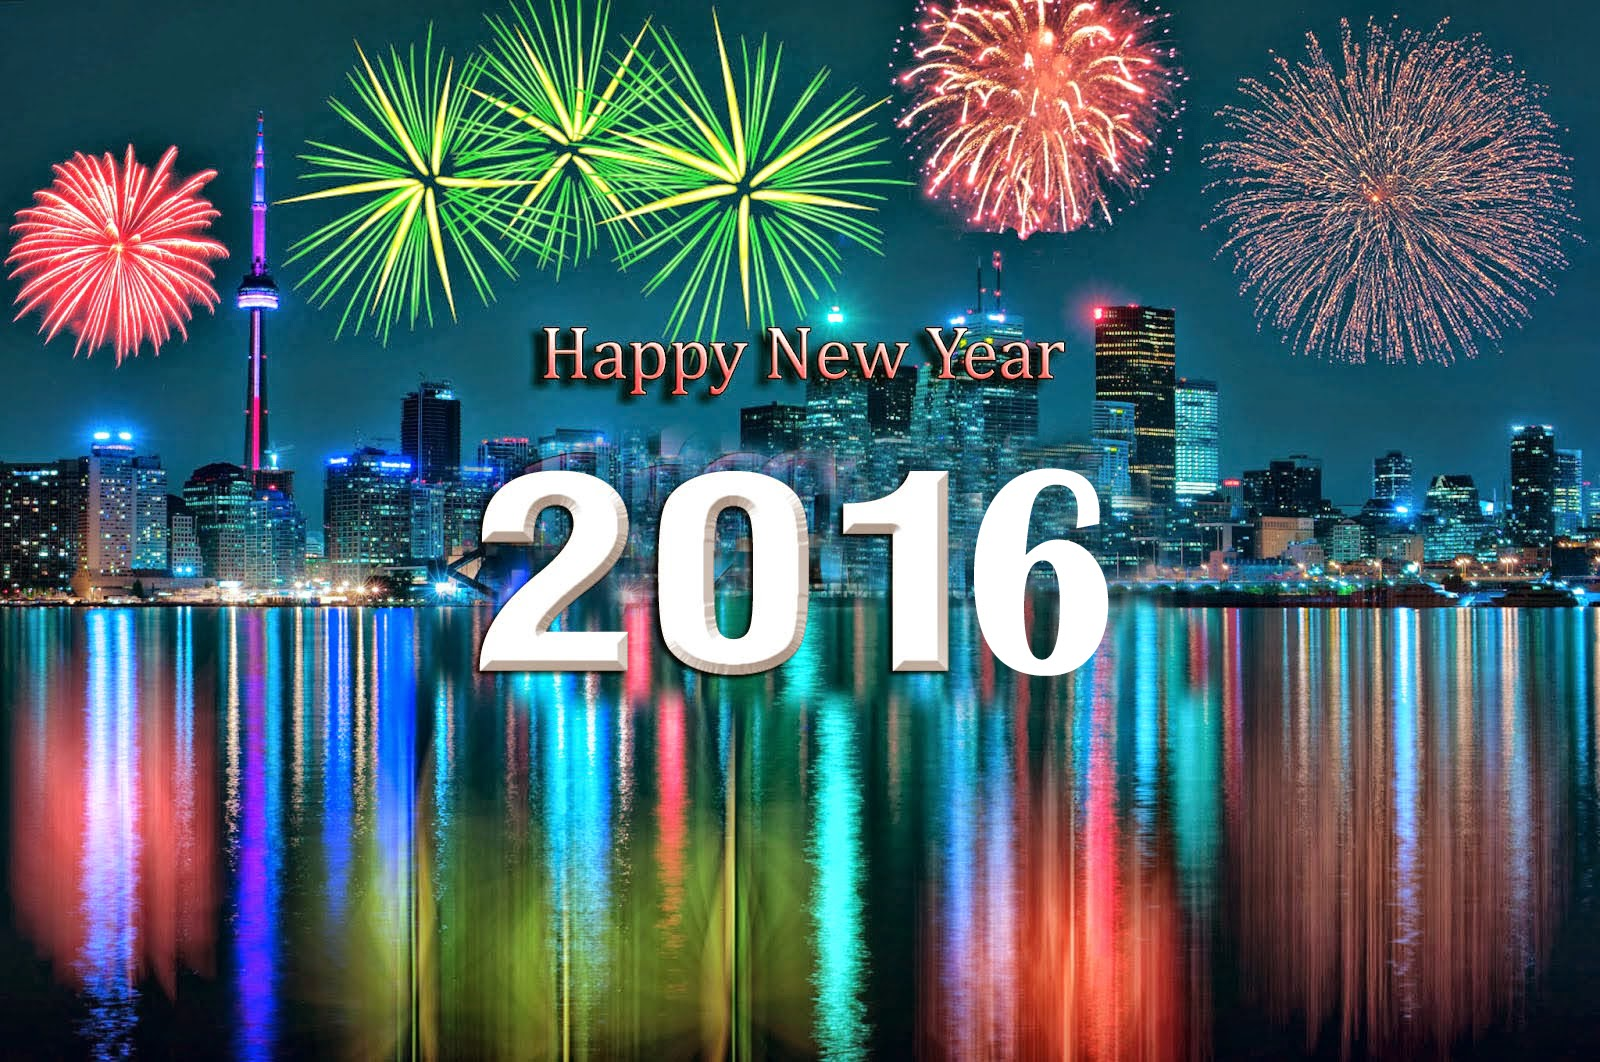 Wallpaper download new year 2015 -  New Year 2016 Live Wallpaper About Latest Posts